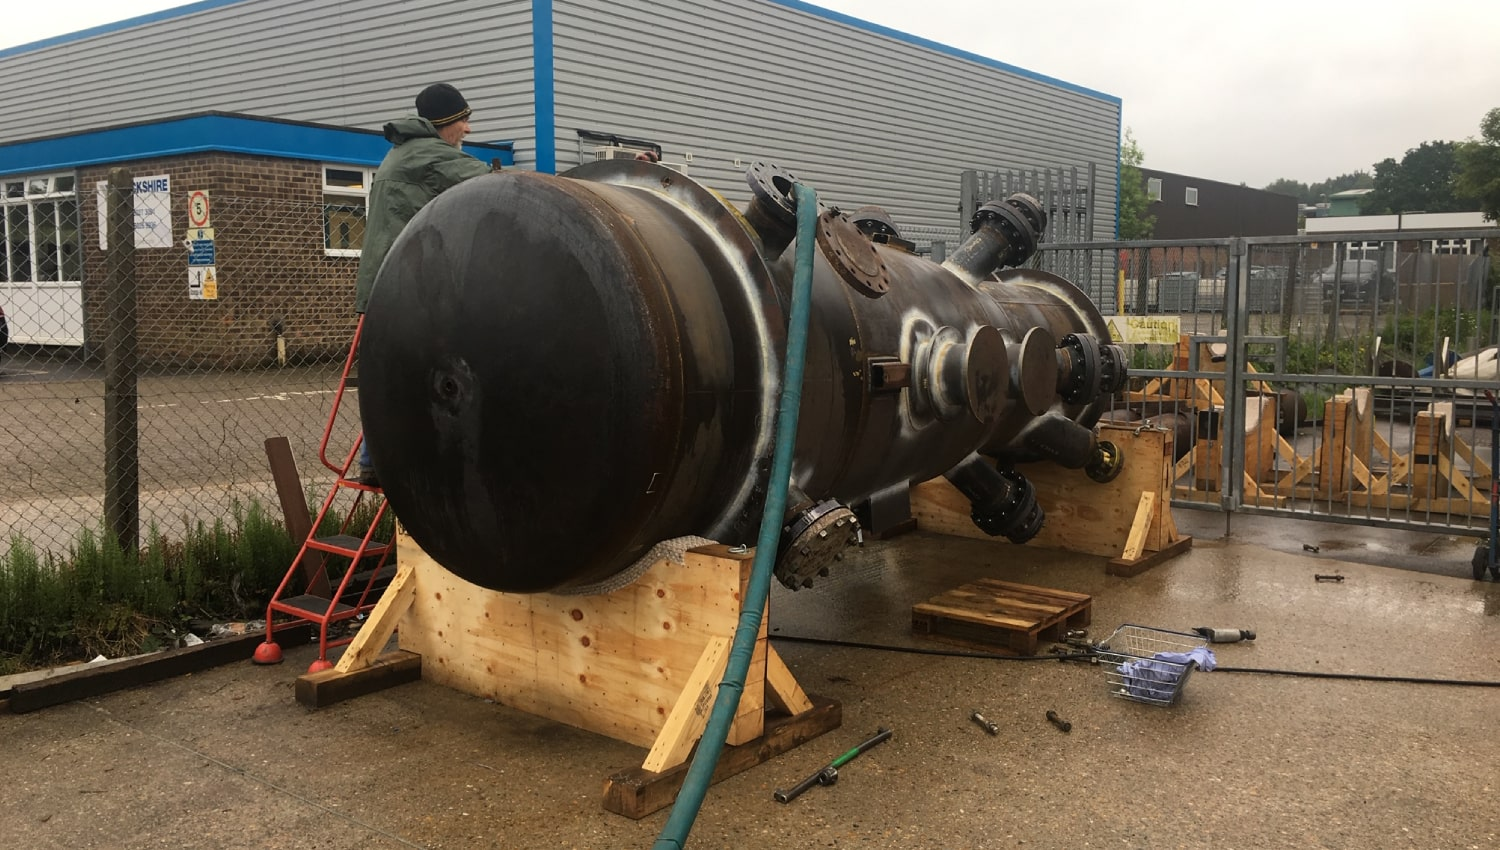 fccu riser hythe marine services pipework fabrication for petrochemical industry petrochem